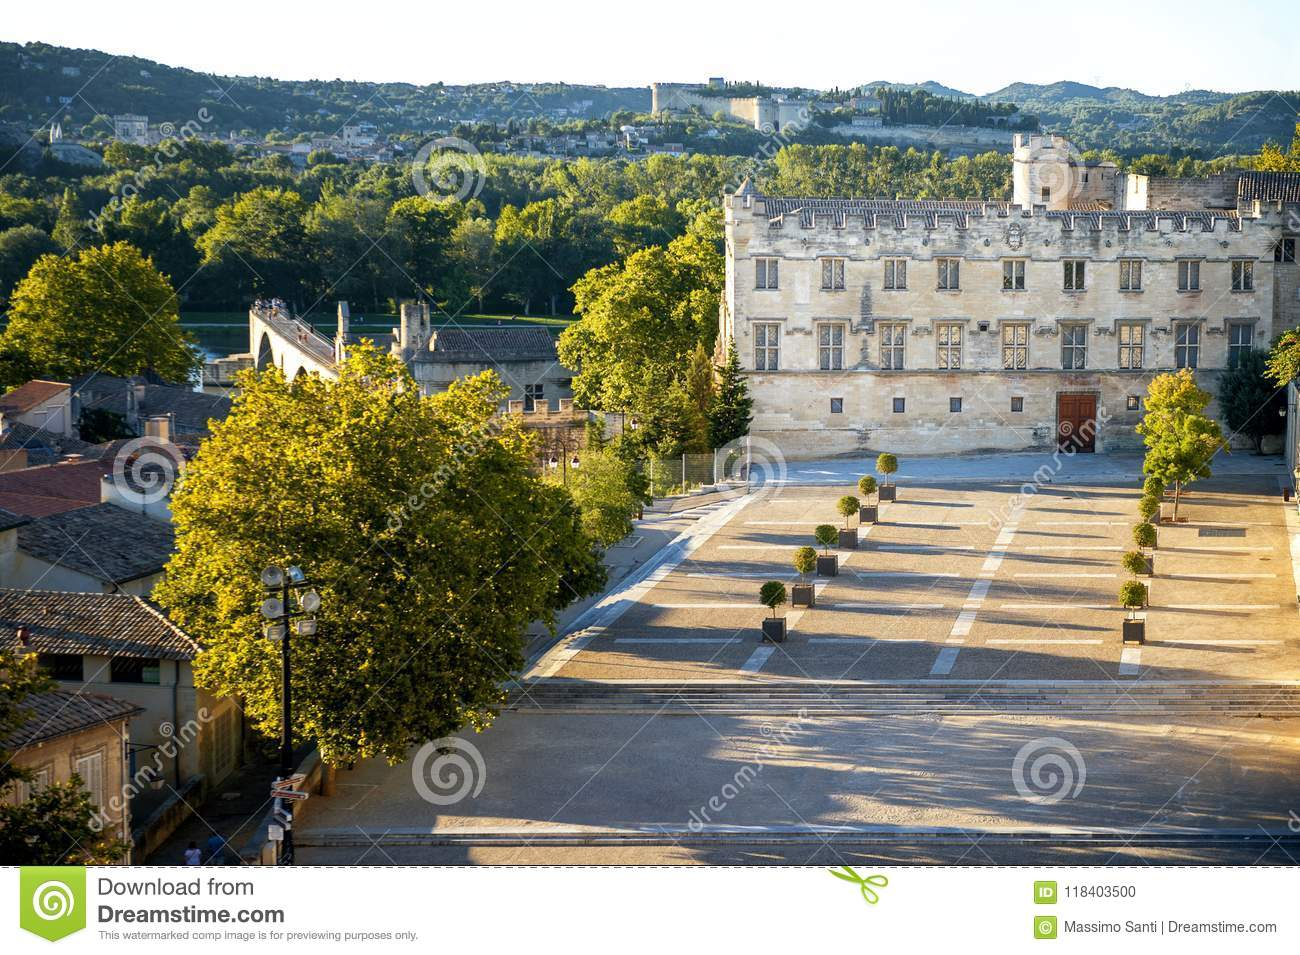 Avignon Palais Des Papes Popes Palace In Avignon In A Beautiful Summer Day Franc Stock Photo Image Of Cathedral Gothic 118403500